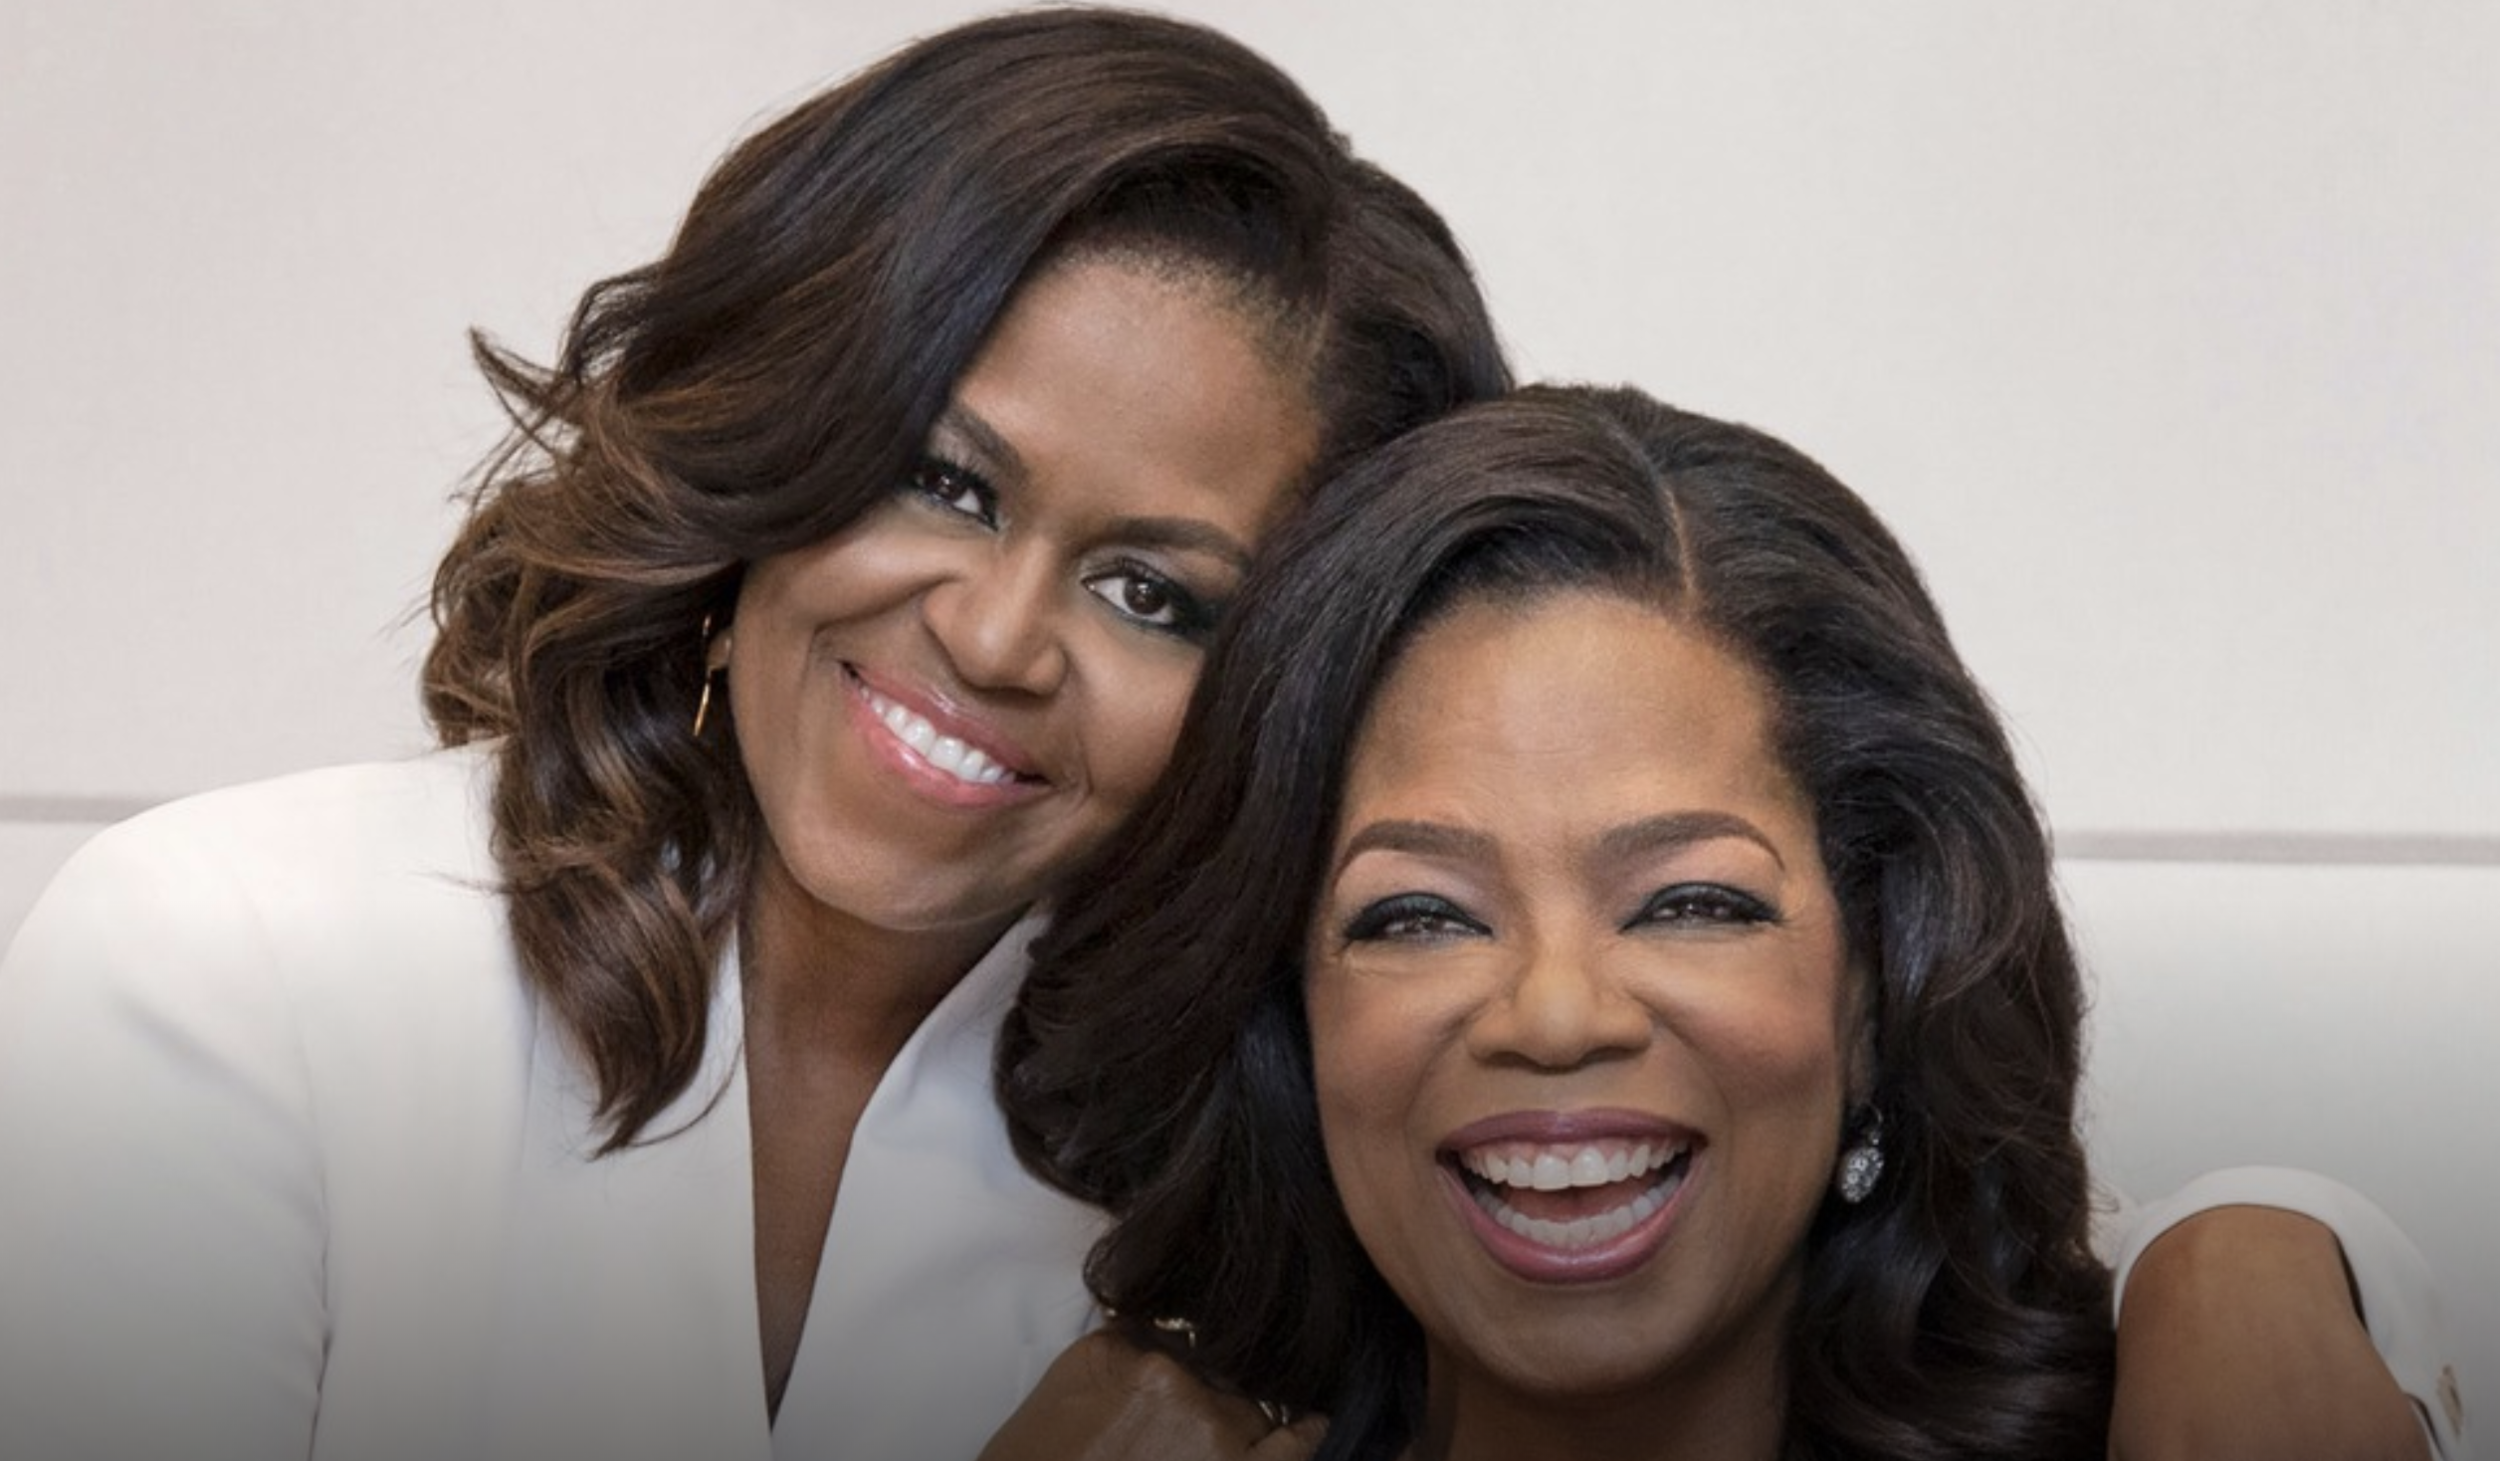 I find both these women inspiring, don't you? They've both been through the ringer, and they're still smiling.